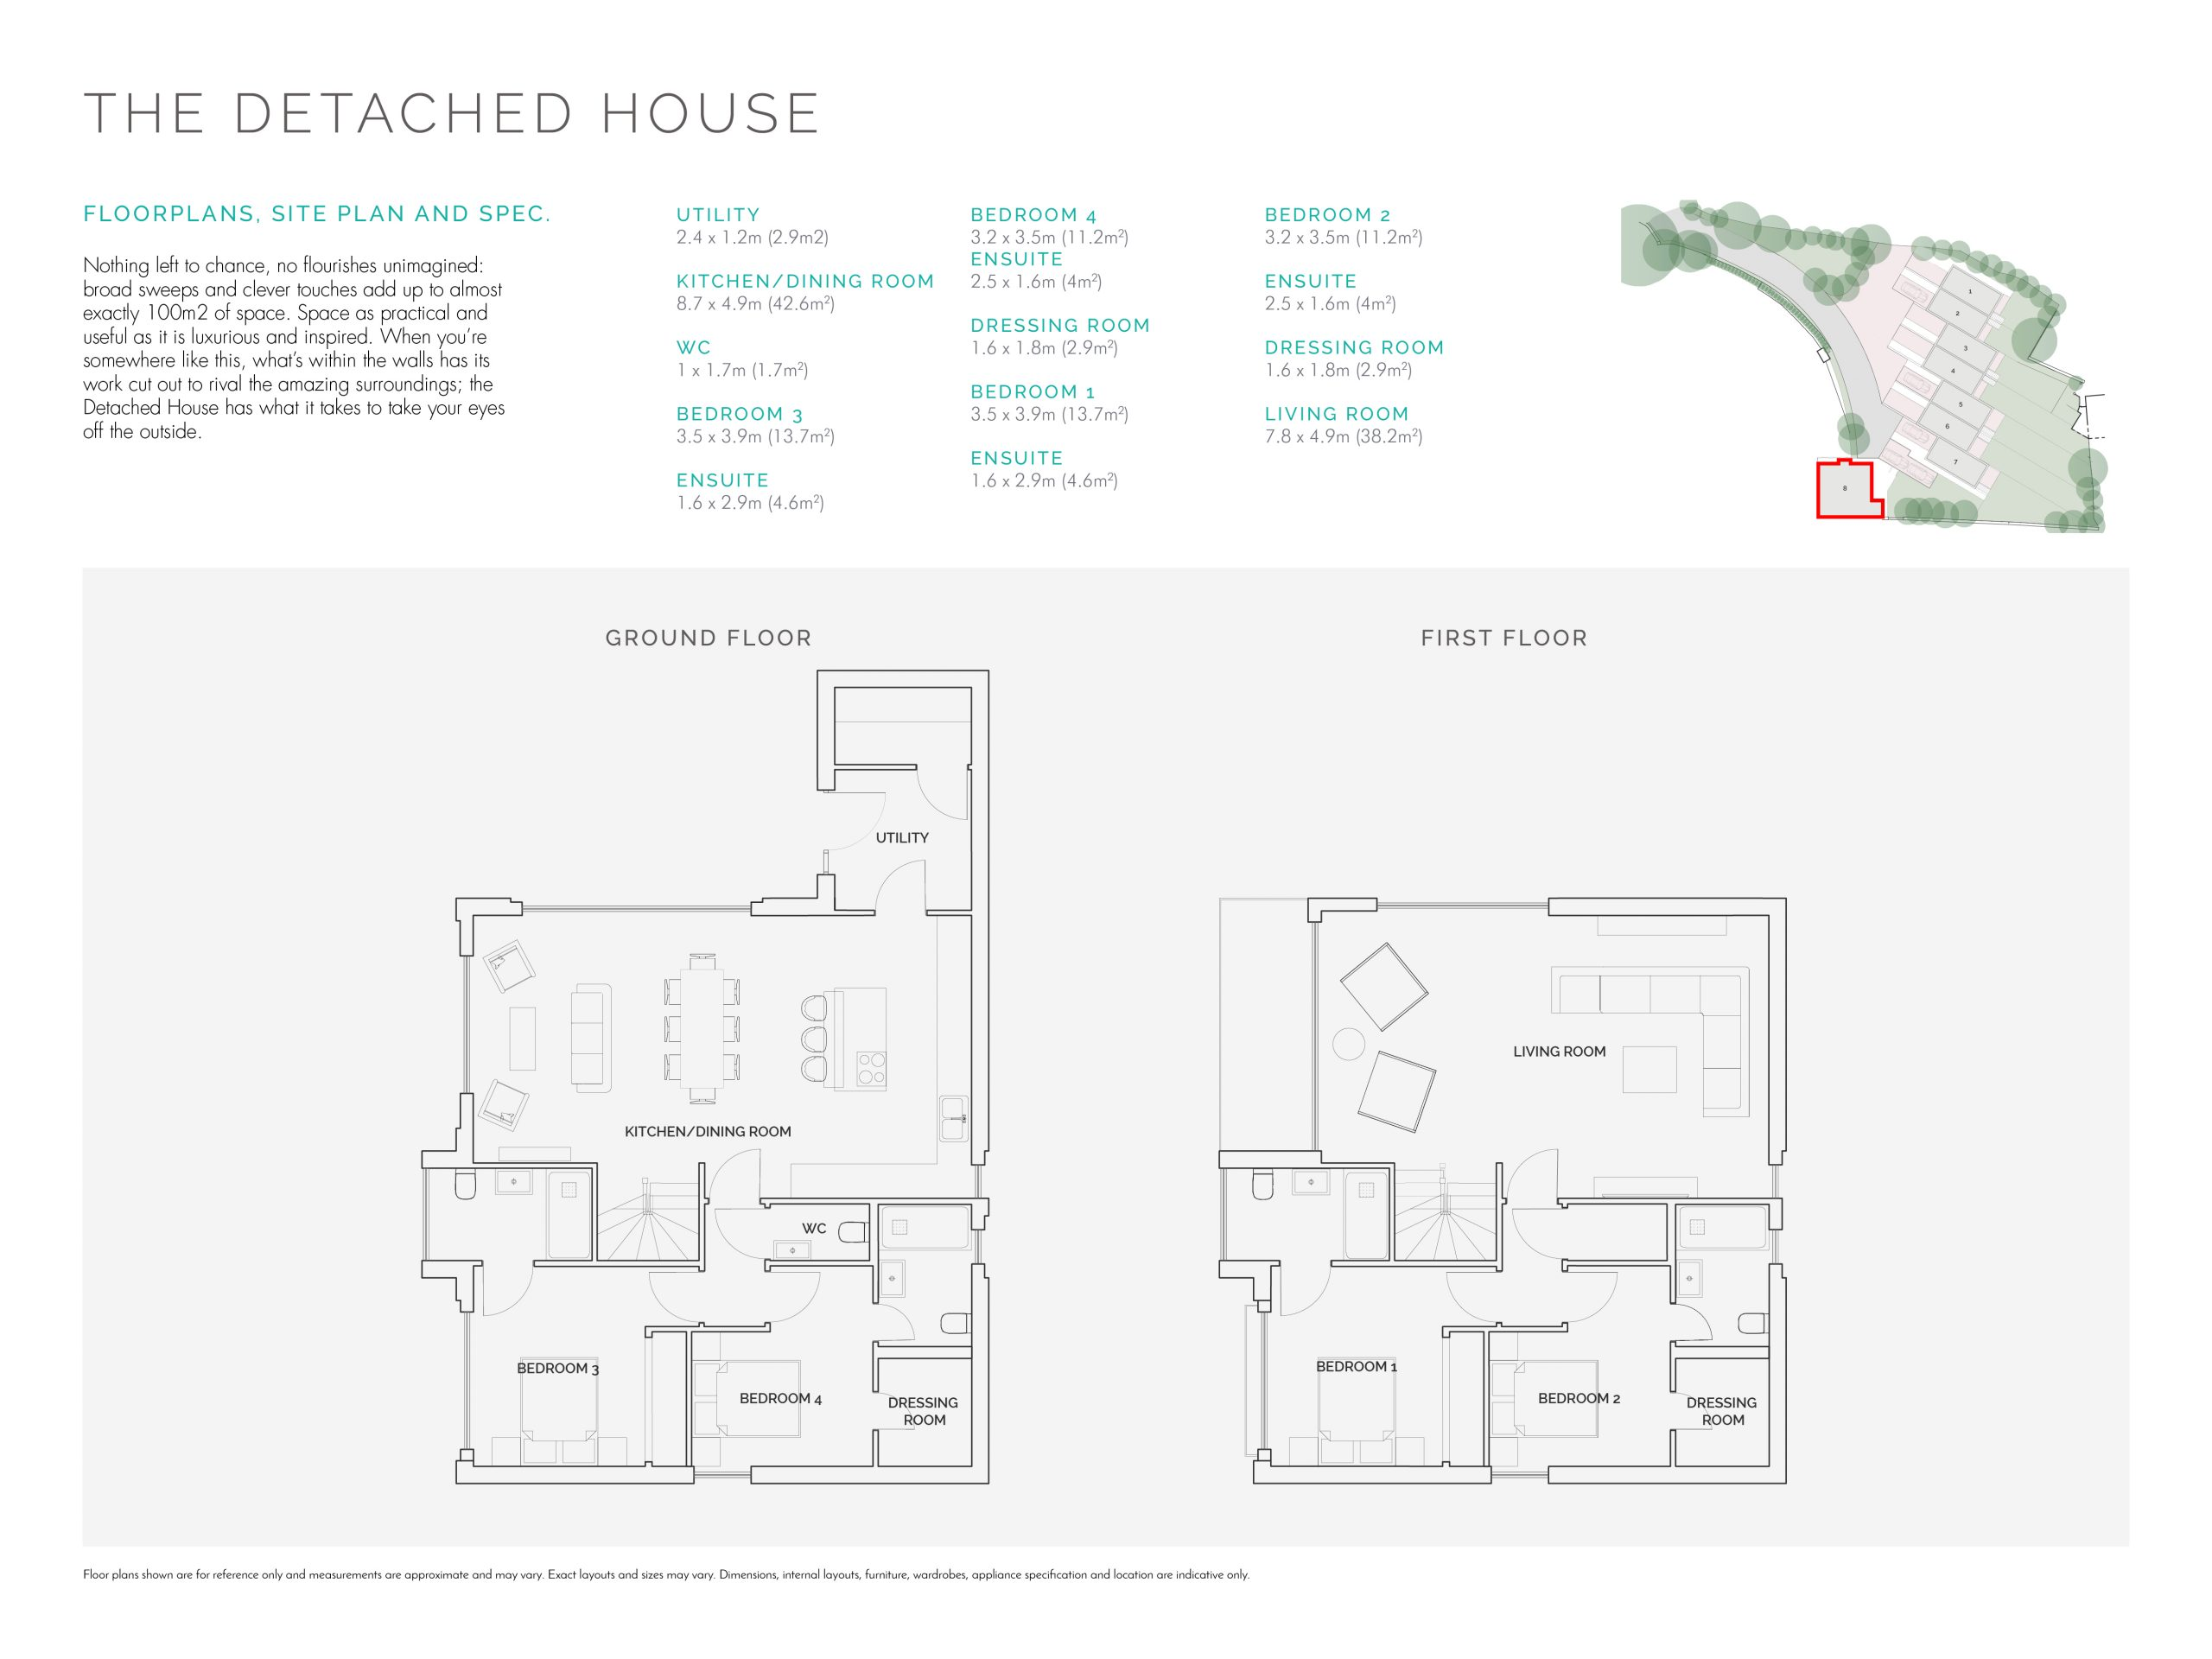 Stephens and stephens developers The Strand porth newquay cornwall Floorplans 1200x900 The detached house